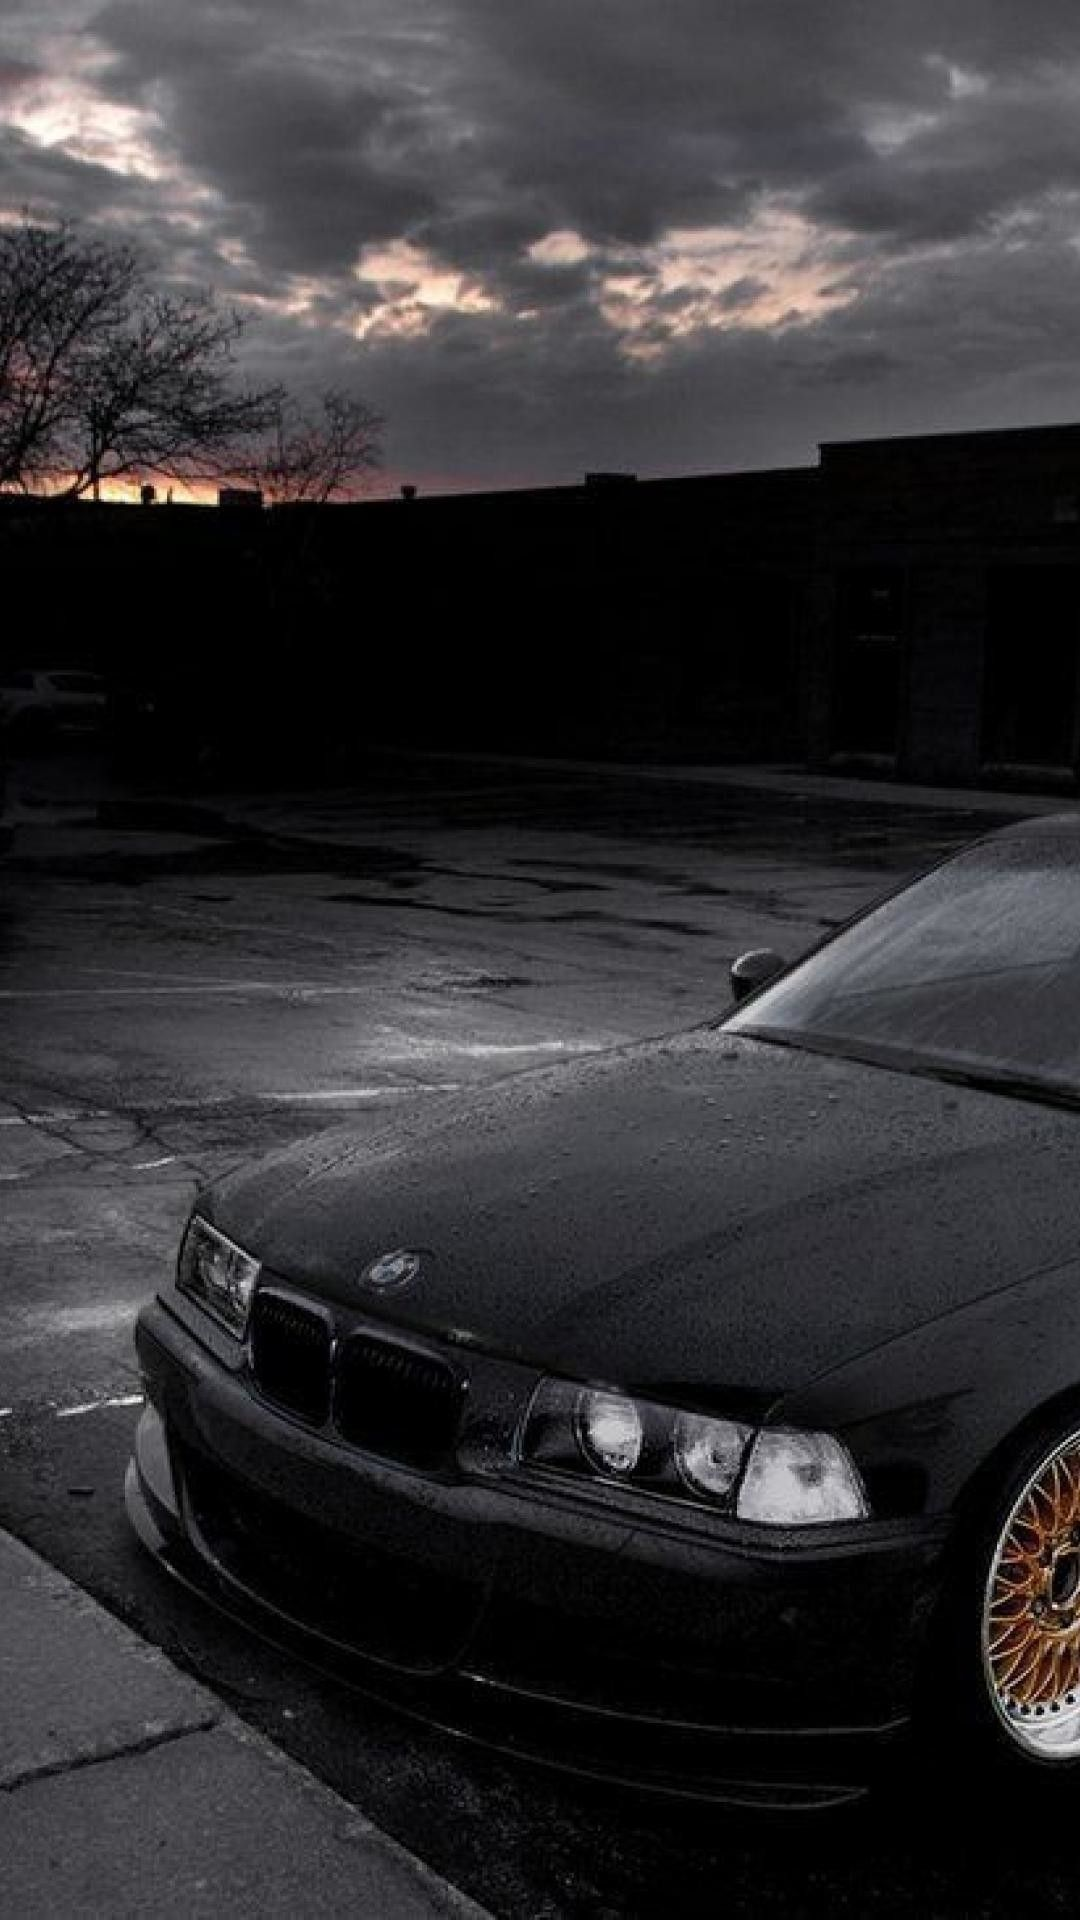 Bmw E36 Wallpaper Hd 698392 Bmw E36 Bmw Wallpapers Bmw 318